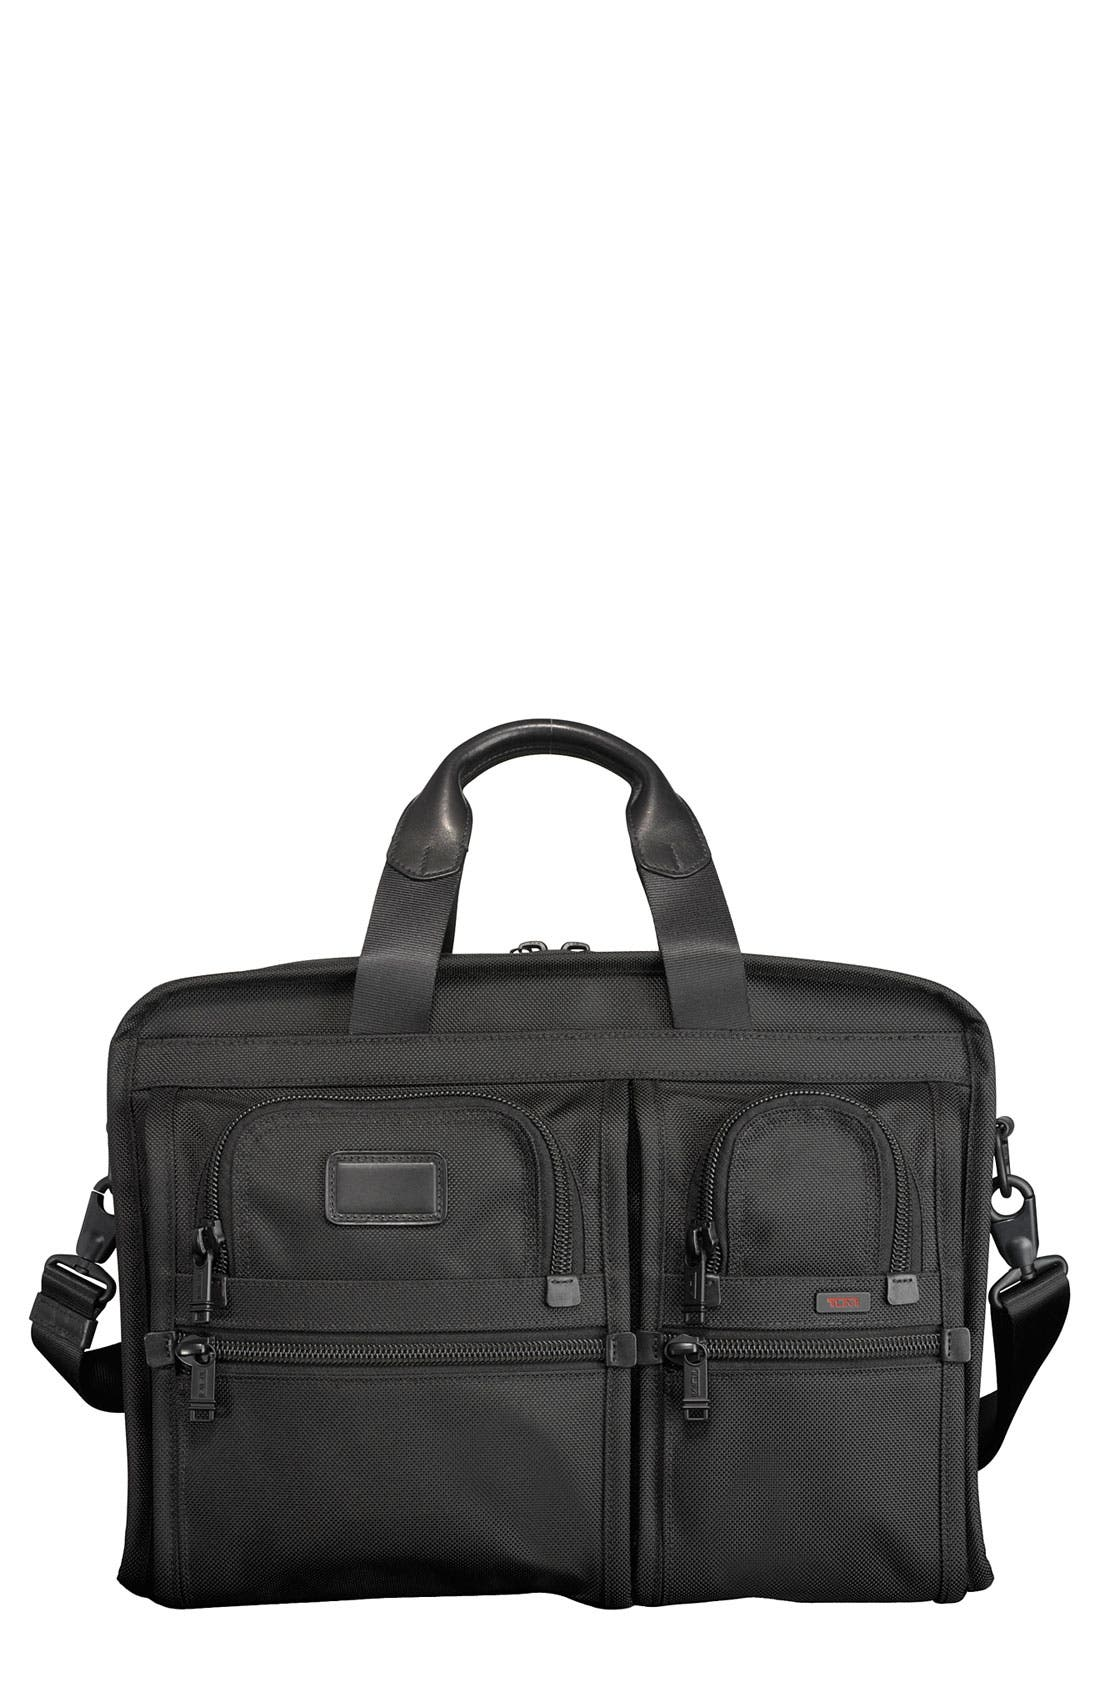 Alternate Image 1 Selected - Tumi 'Alpha' International Organizer Briefcase